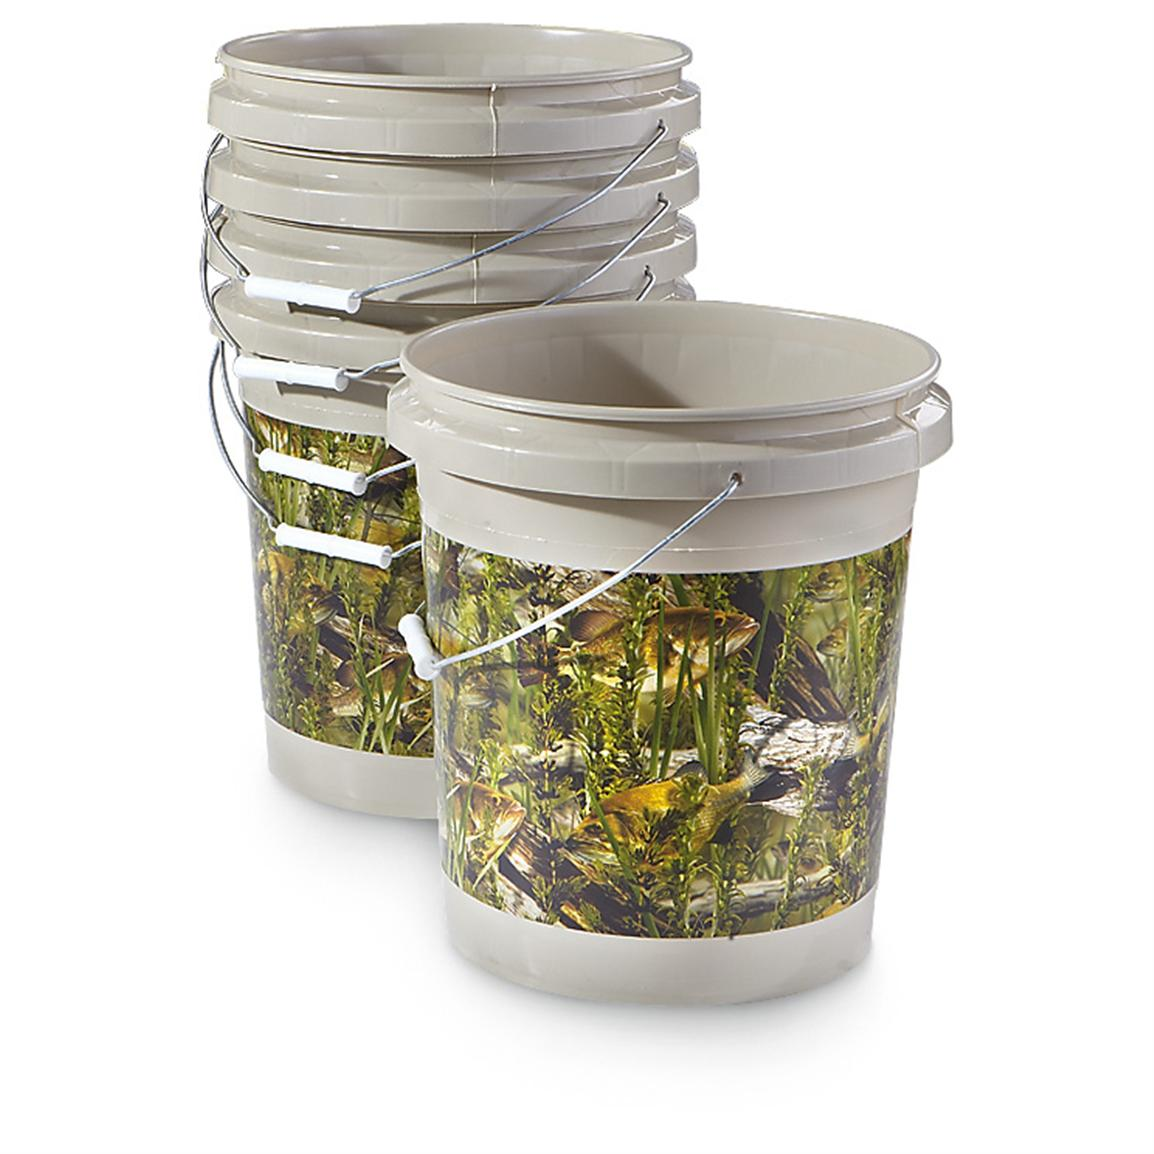 5-Pk. of 5-gal. Camo Pails, Fishouflage™